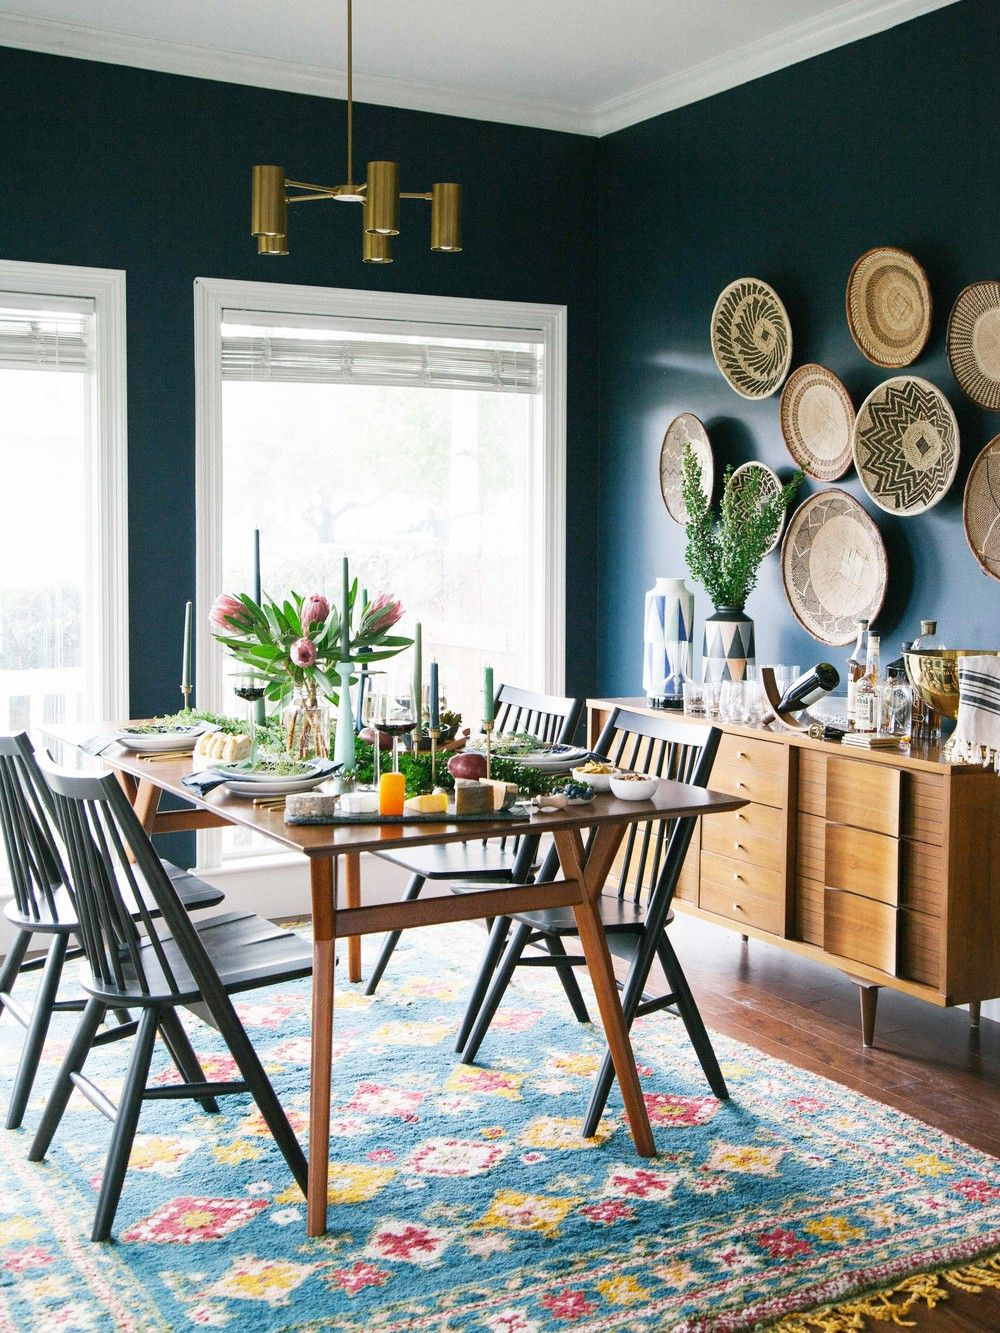 This Dining Room Feels Both Moody And Bright Thanks To The Rich Blue Walls Kilim The Contemporary Windsor Chairs Add Modern Flair